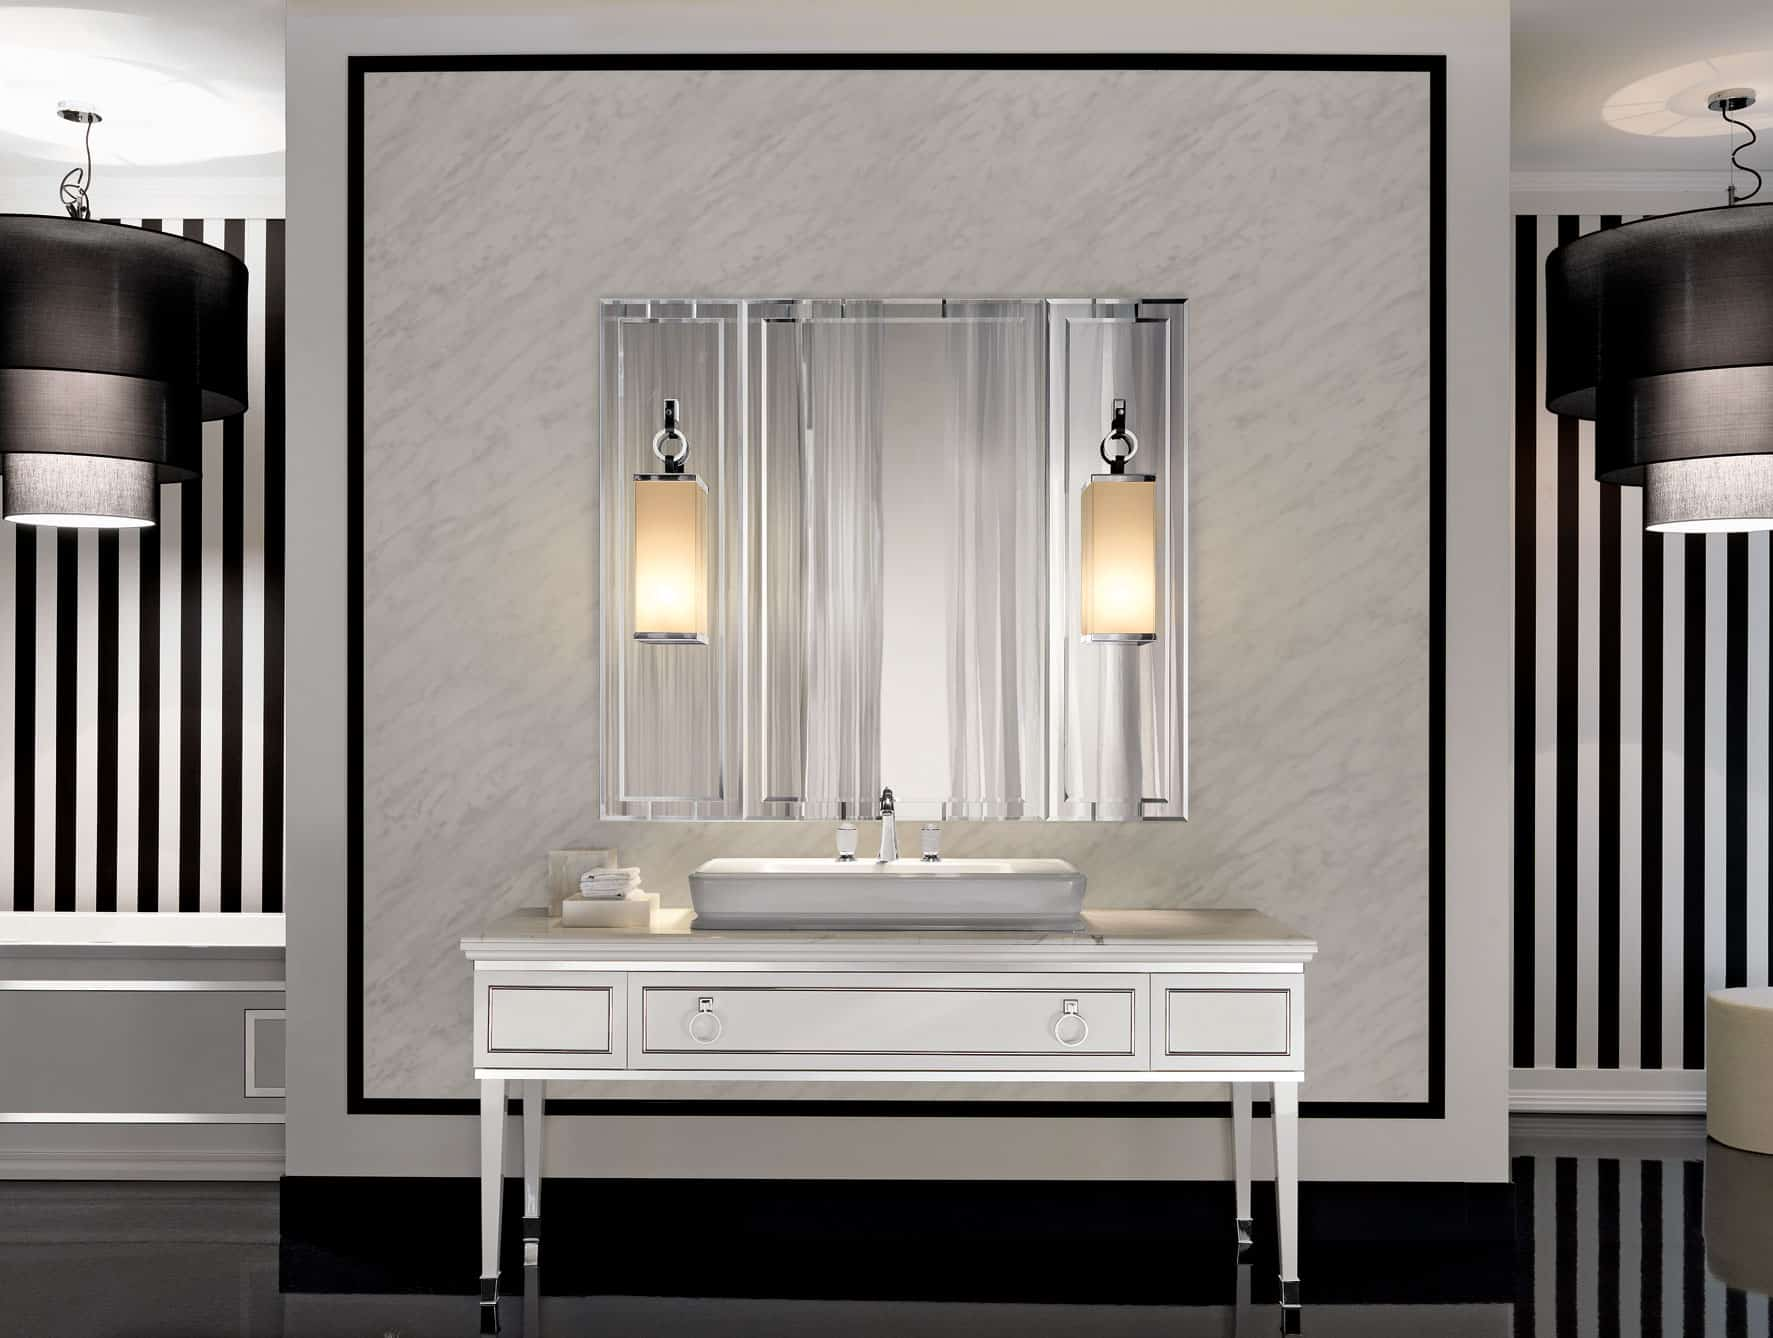 Art deco bathroom lighting  Bathroom Lighting Ideas For Every Style